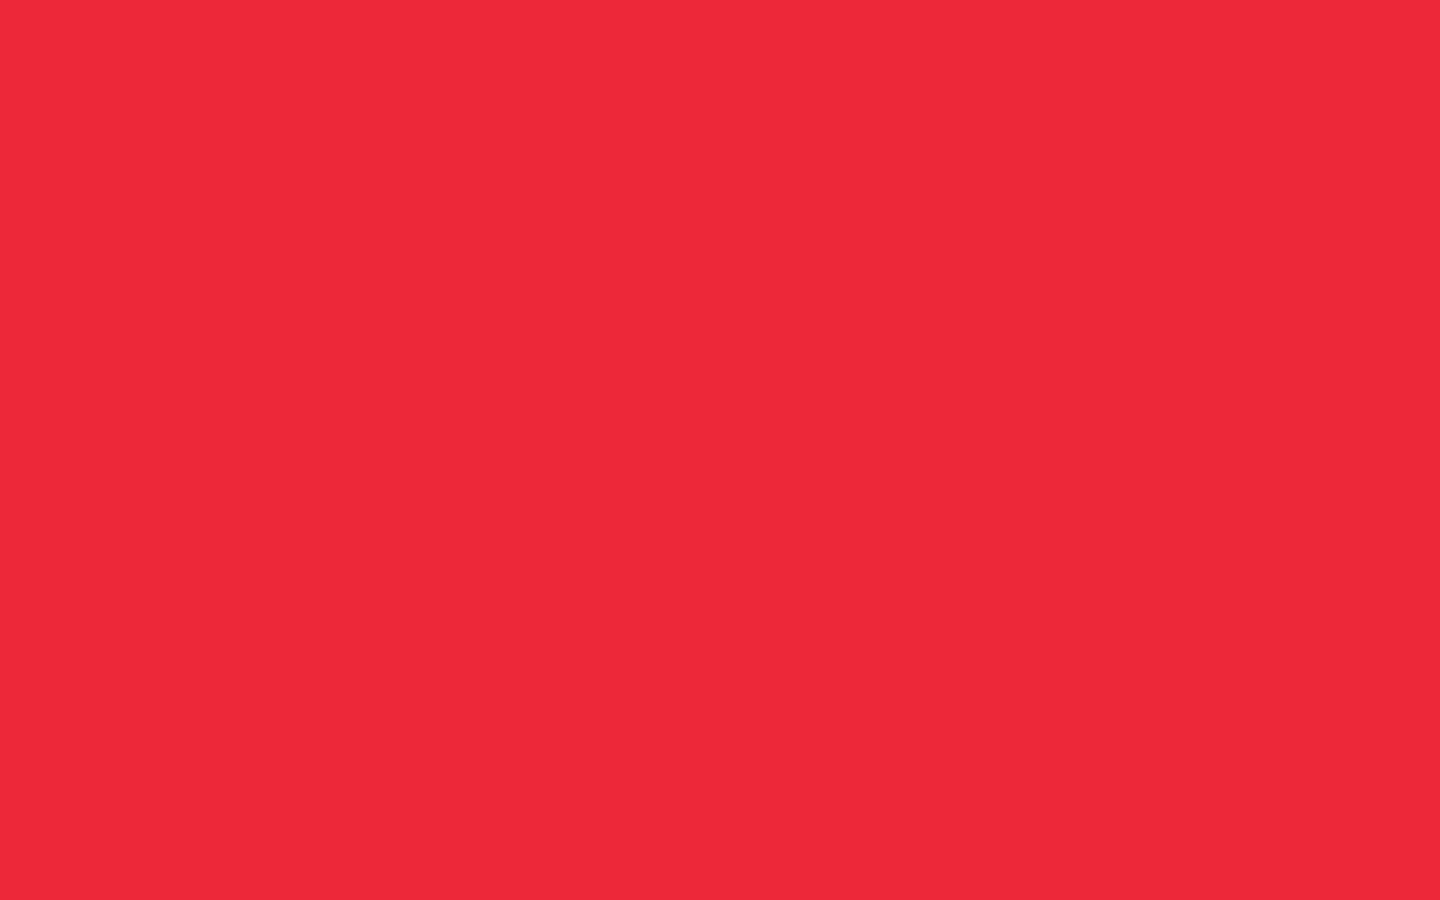 1440x900 Imperial Red Solid Color Background